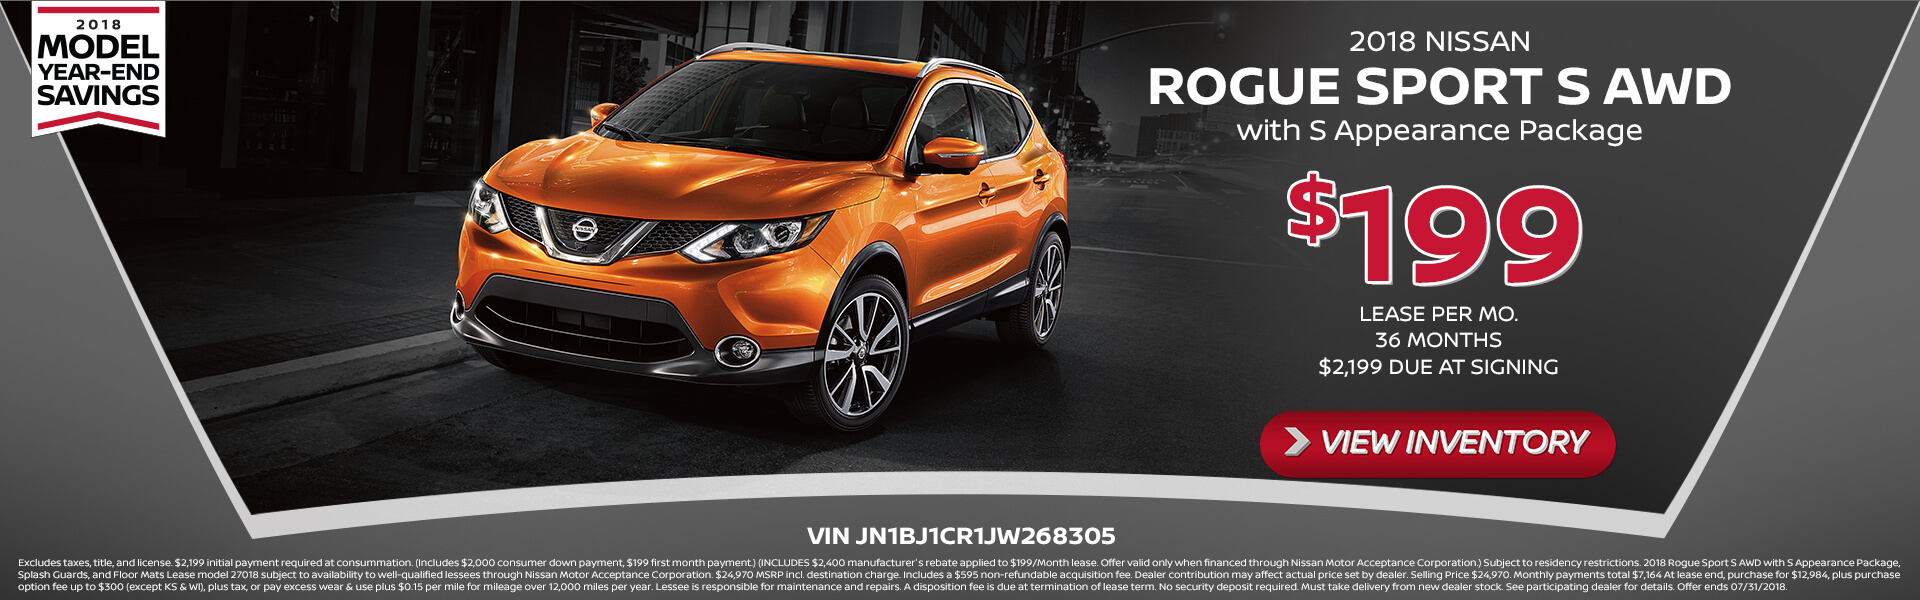 Rogue Sport Lease $199